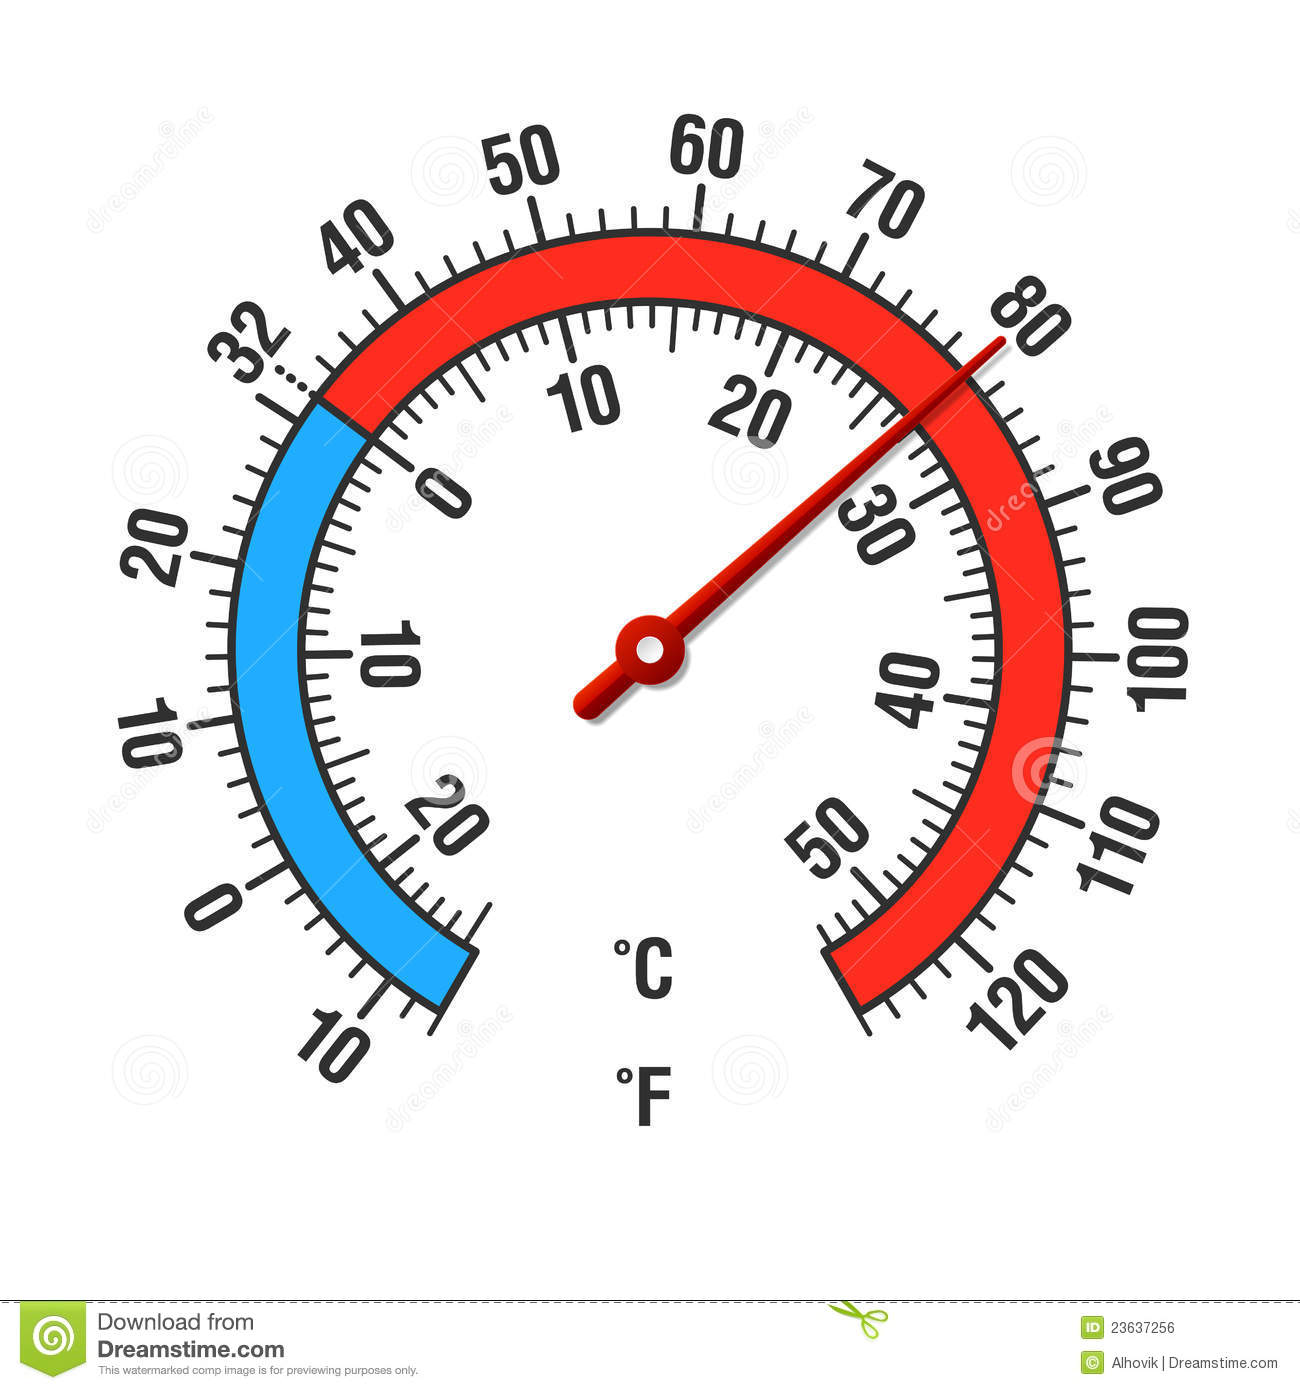 Celsius And Fahrenheit Thermometer Royalty Free Stock